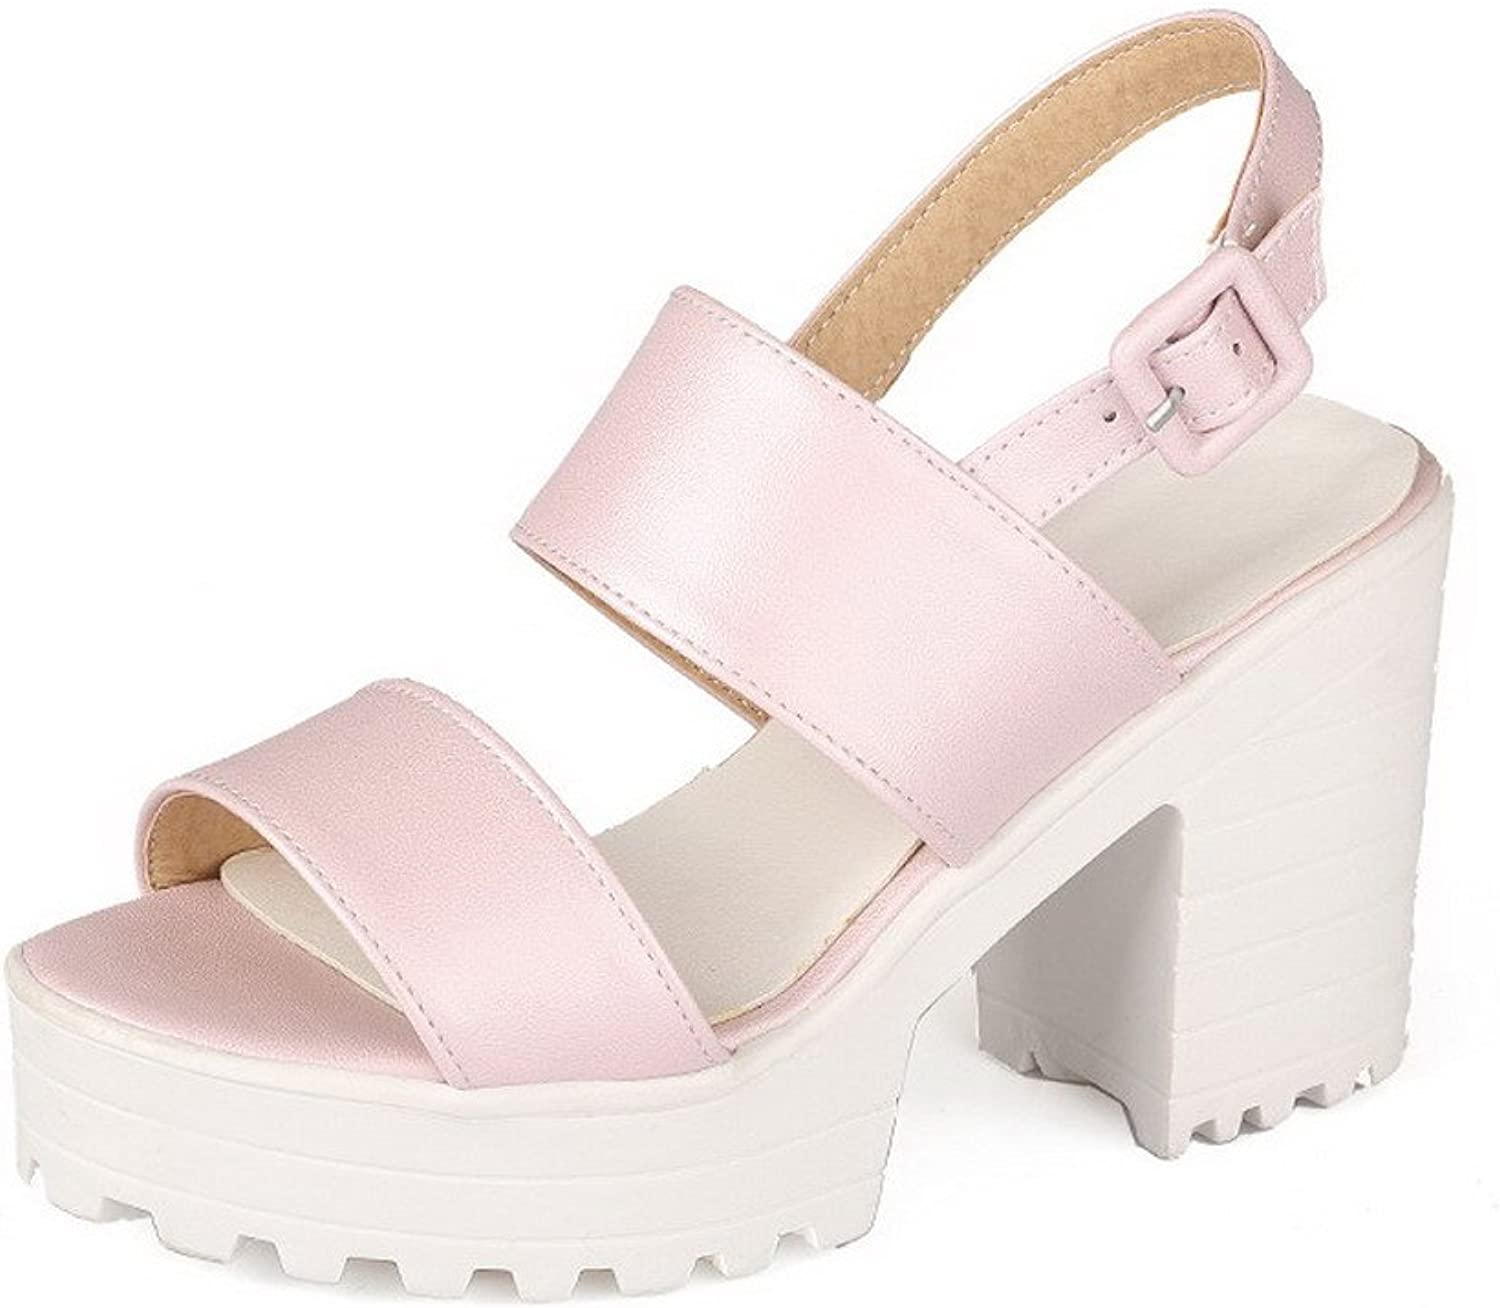 WeenFashion Women's Open Toe High-Heels Soft Material Solid Buckle Platforms-Sandals